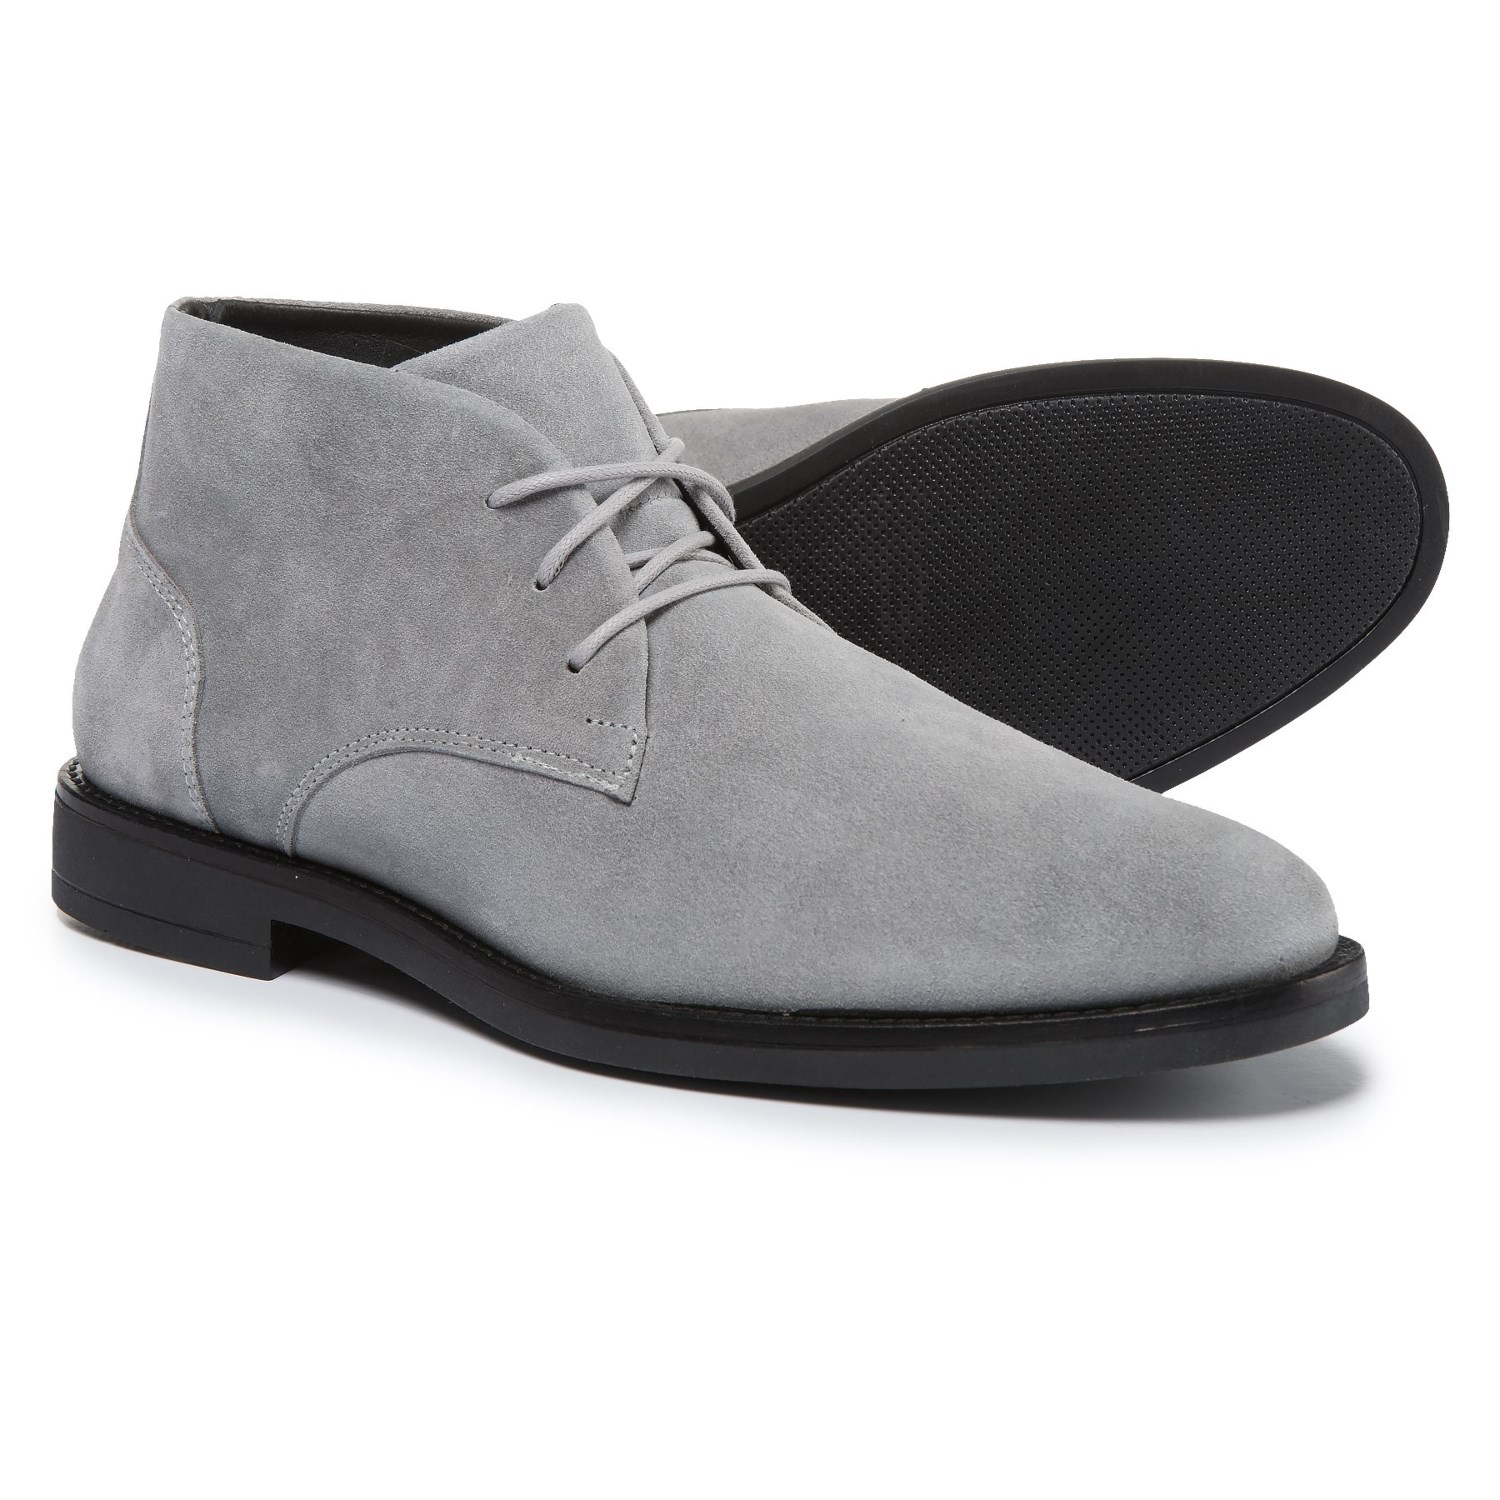 A Testoni Made In Italy Diffusion Clark Chukka Boots For